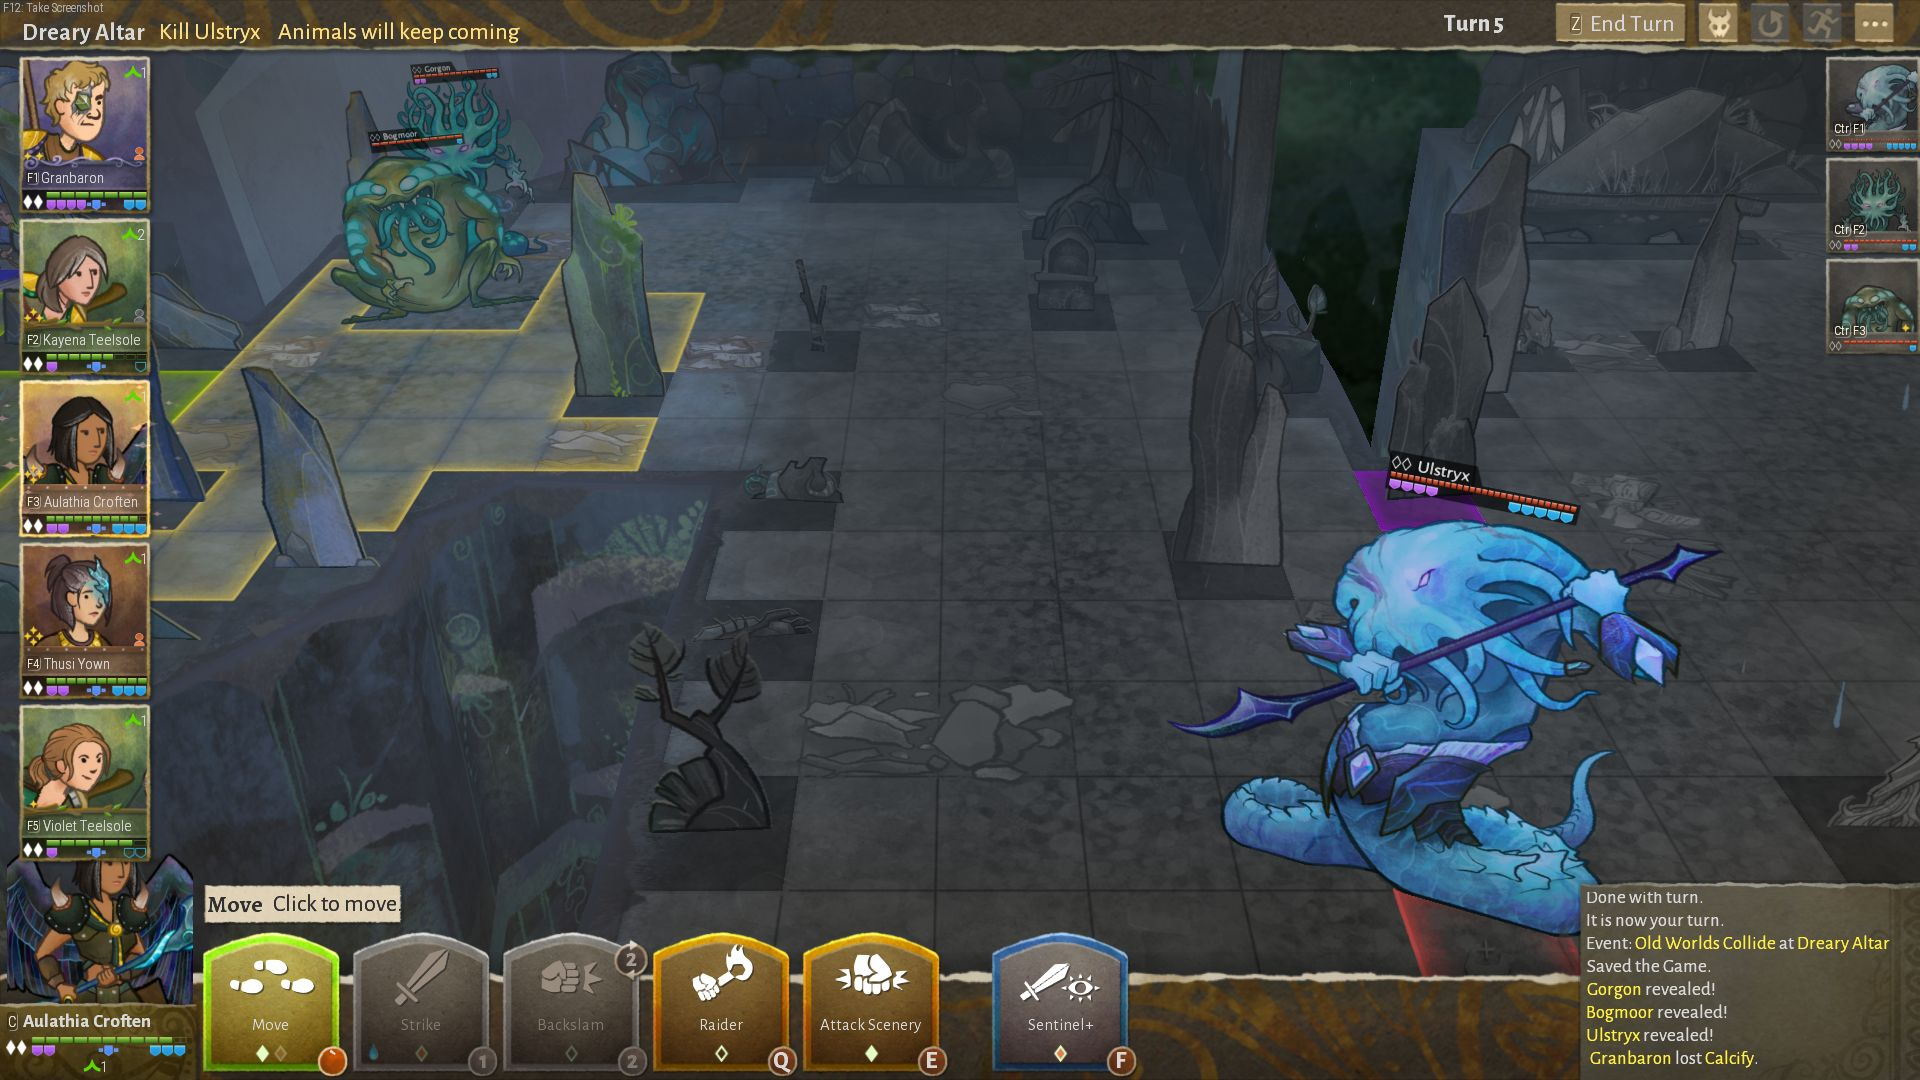 Amphibious monsters prepare for turn-based combat on a grid